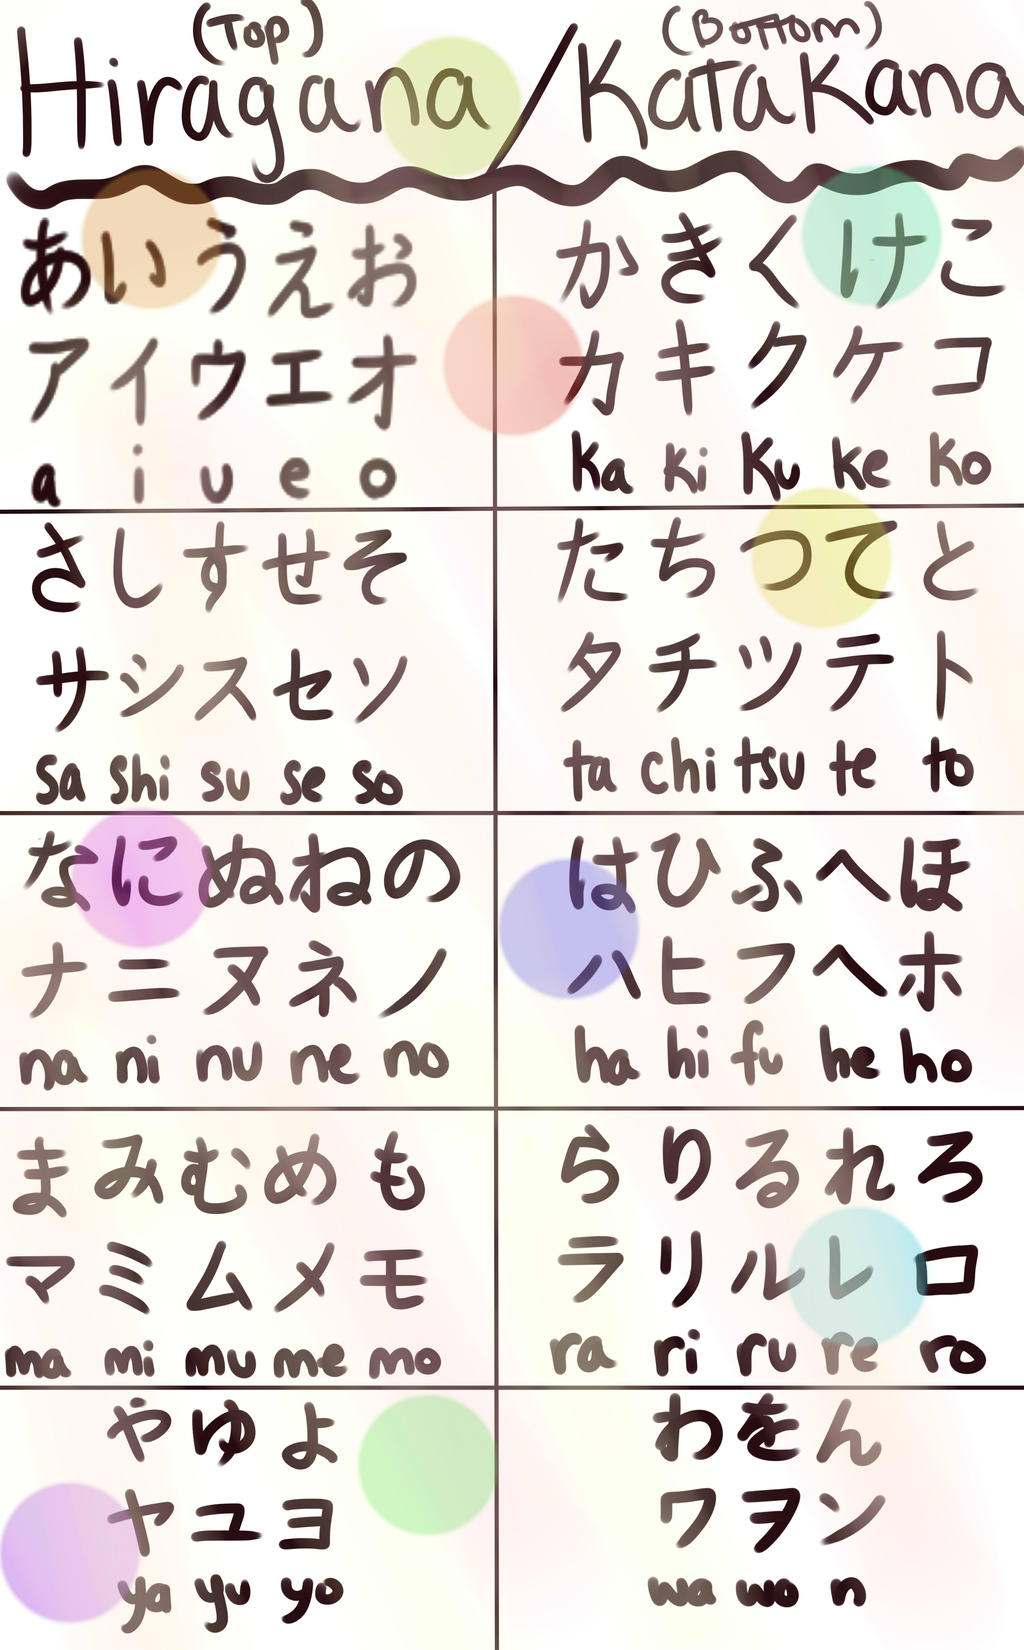 how to learn hiragana quick